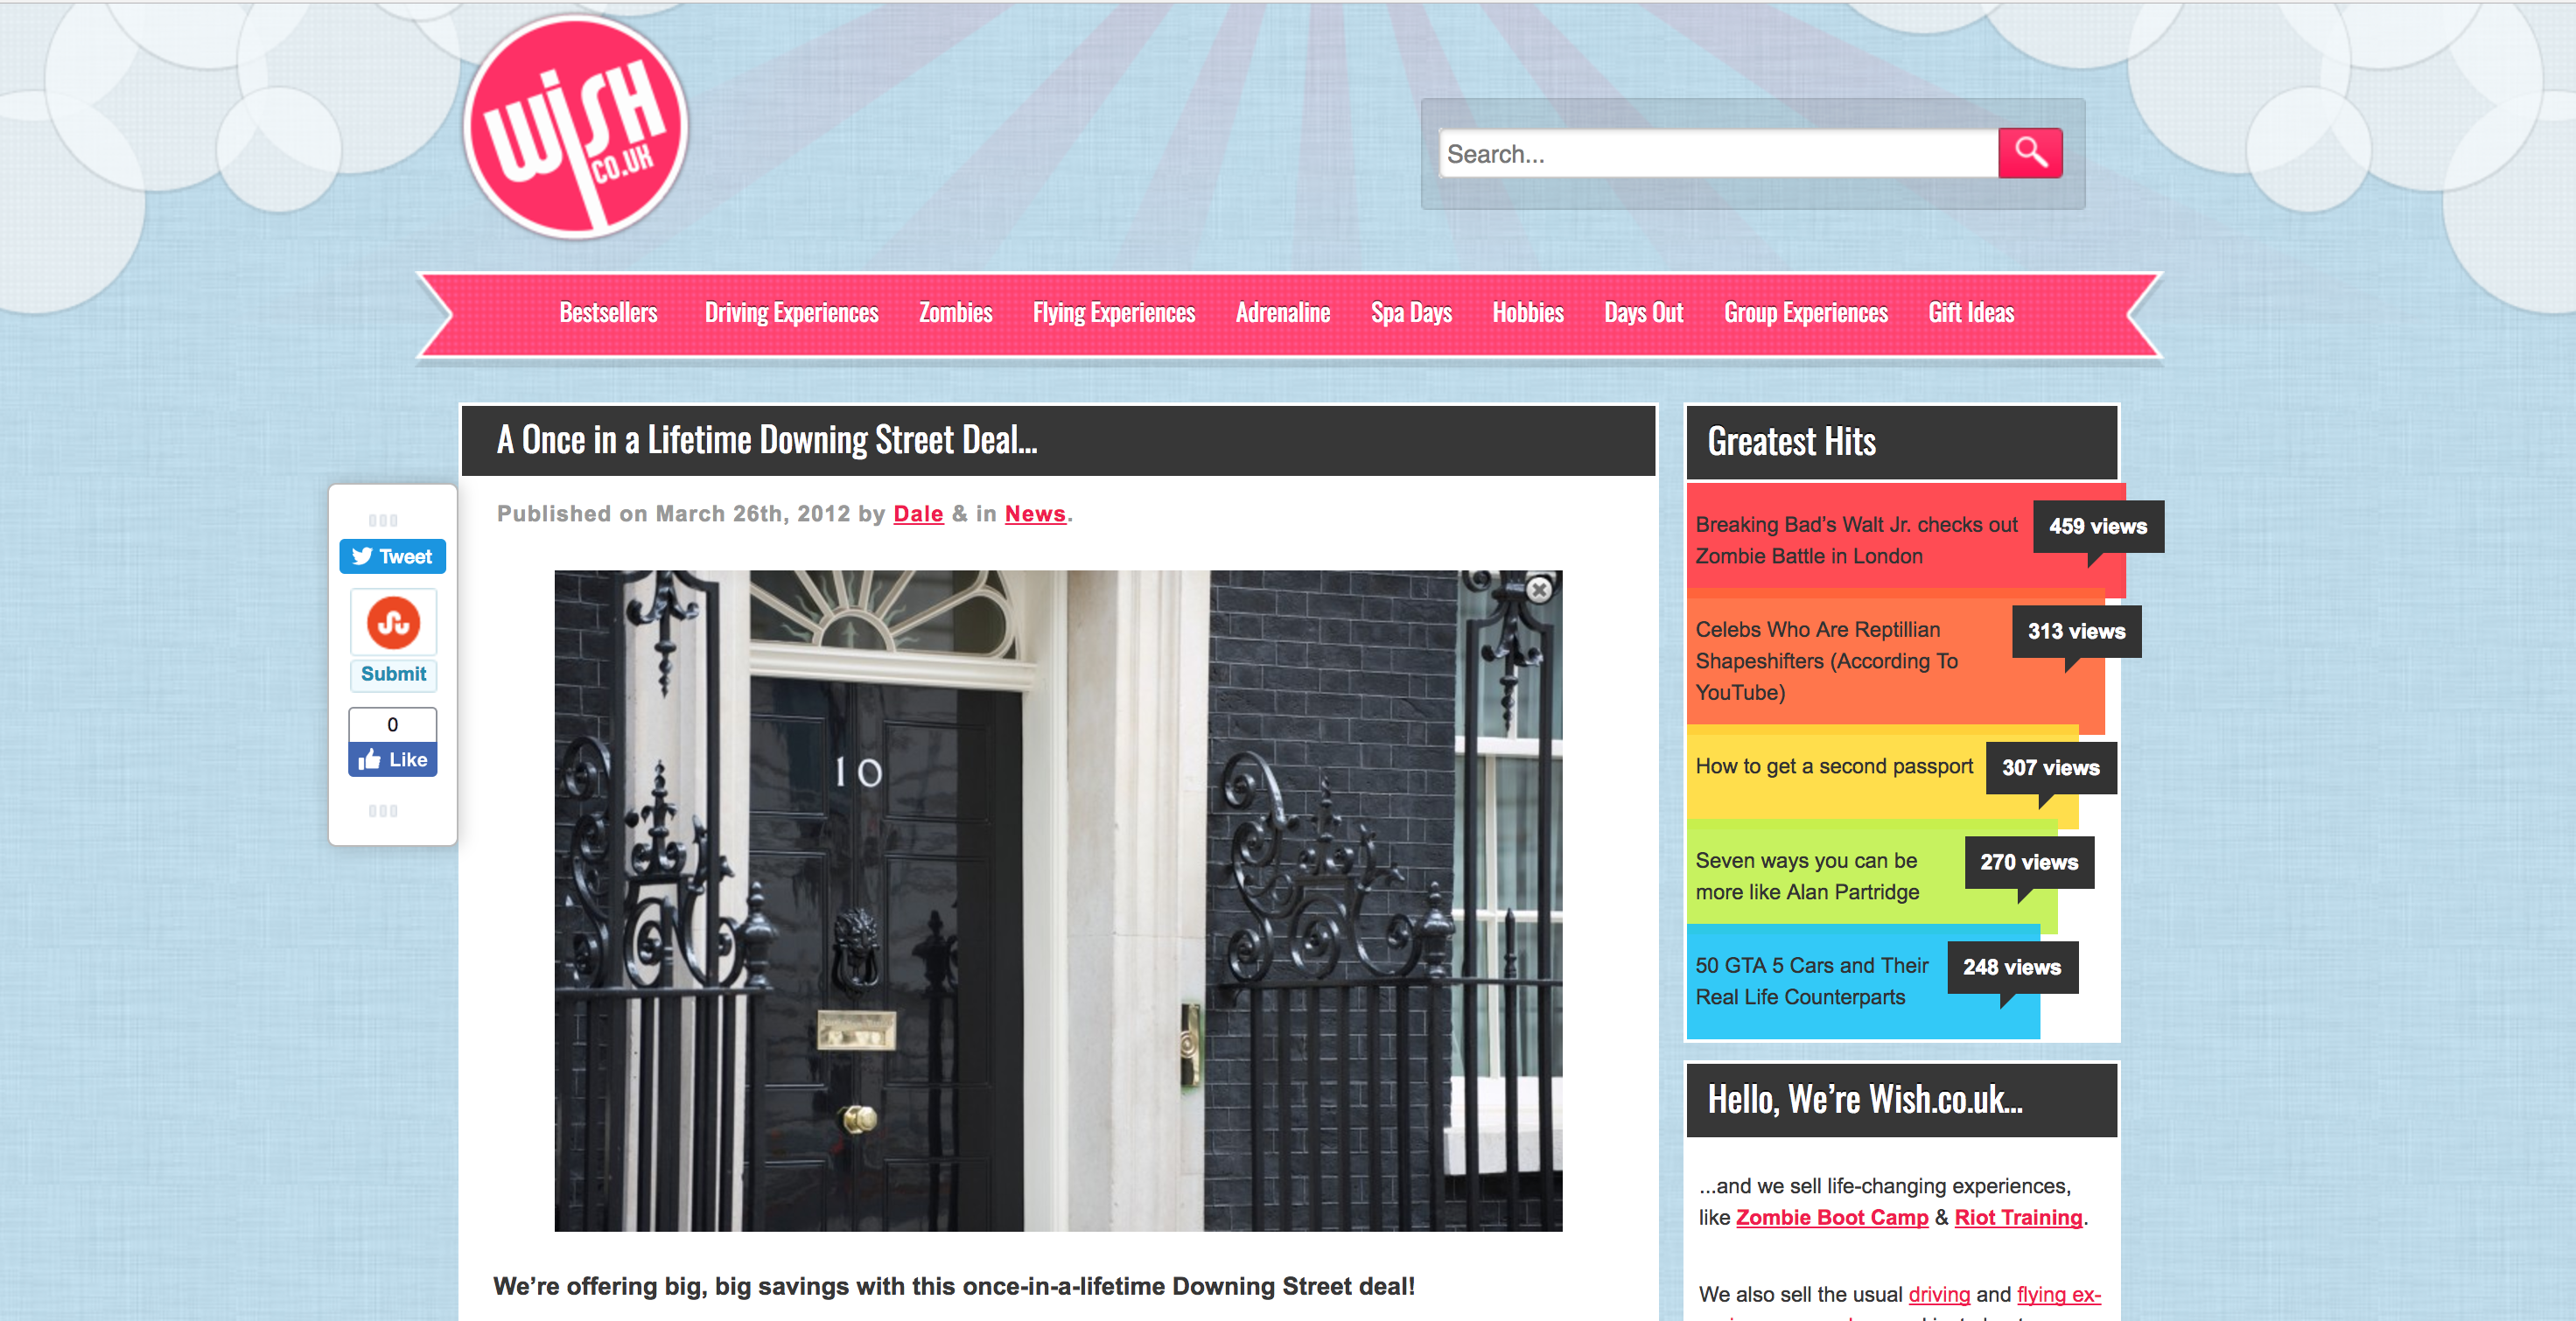 Wish's Once In A Lifetime Downing Street Deal